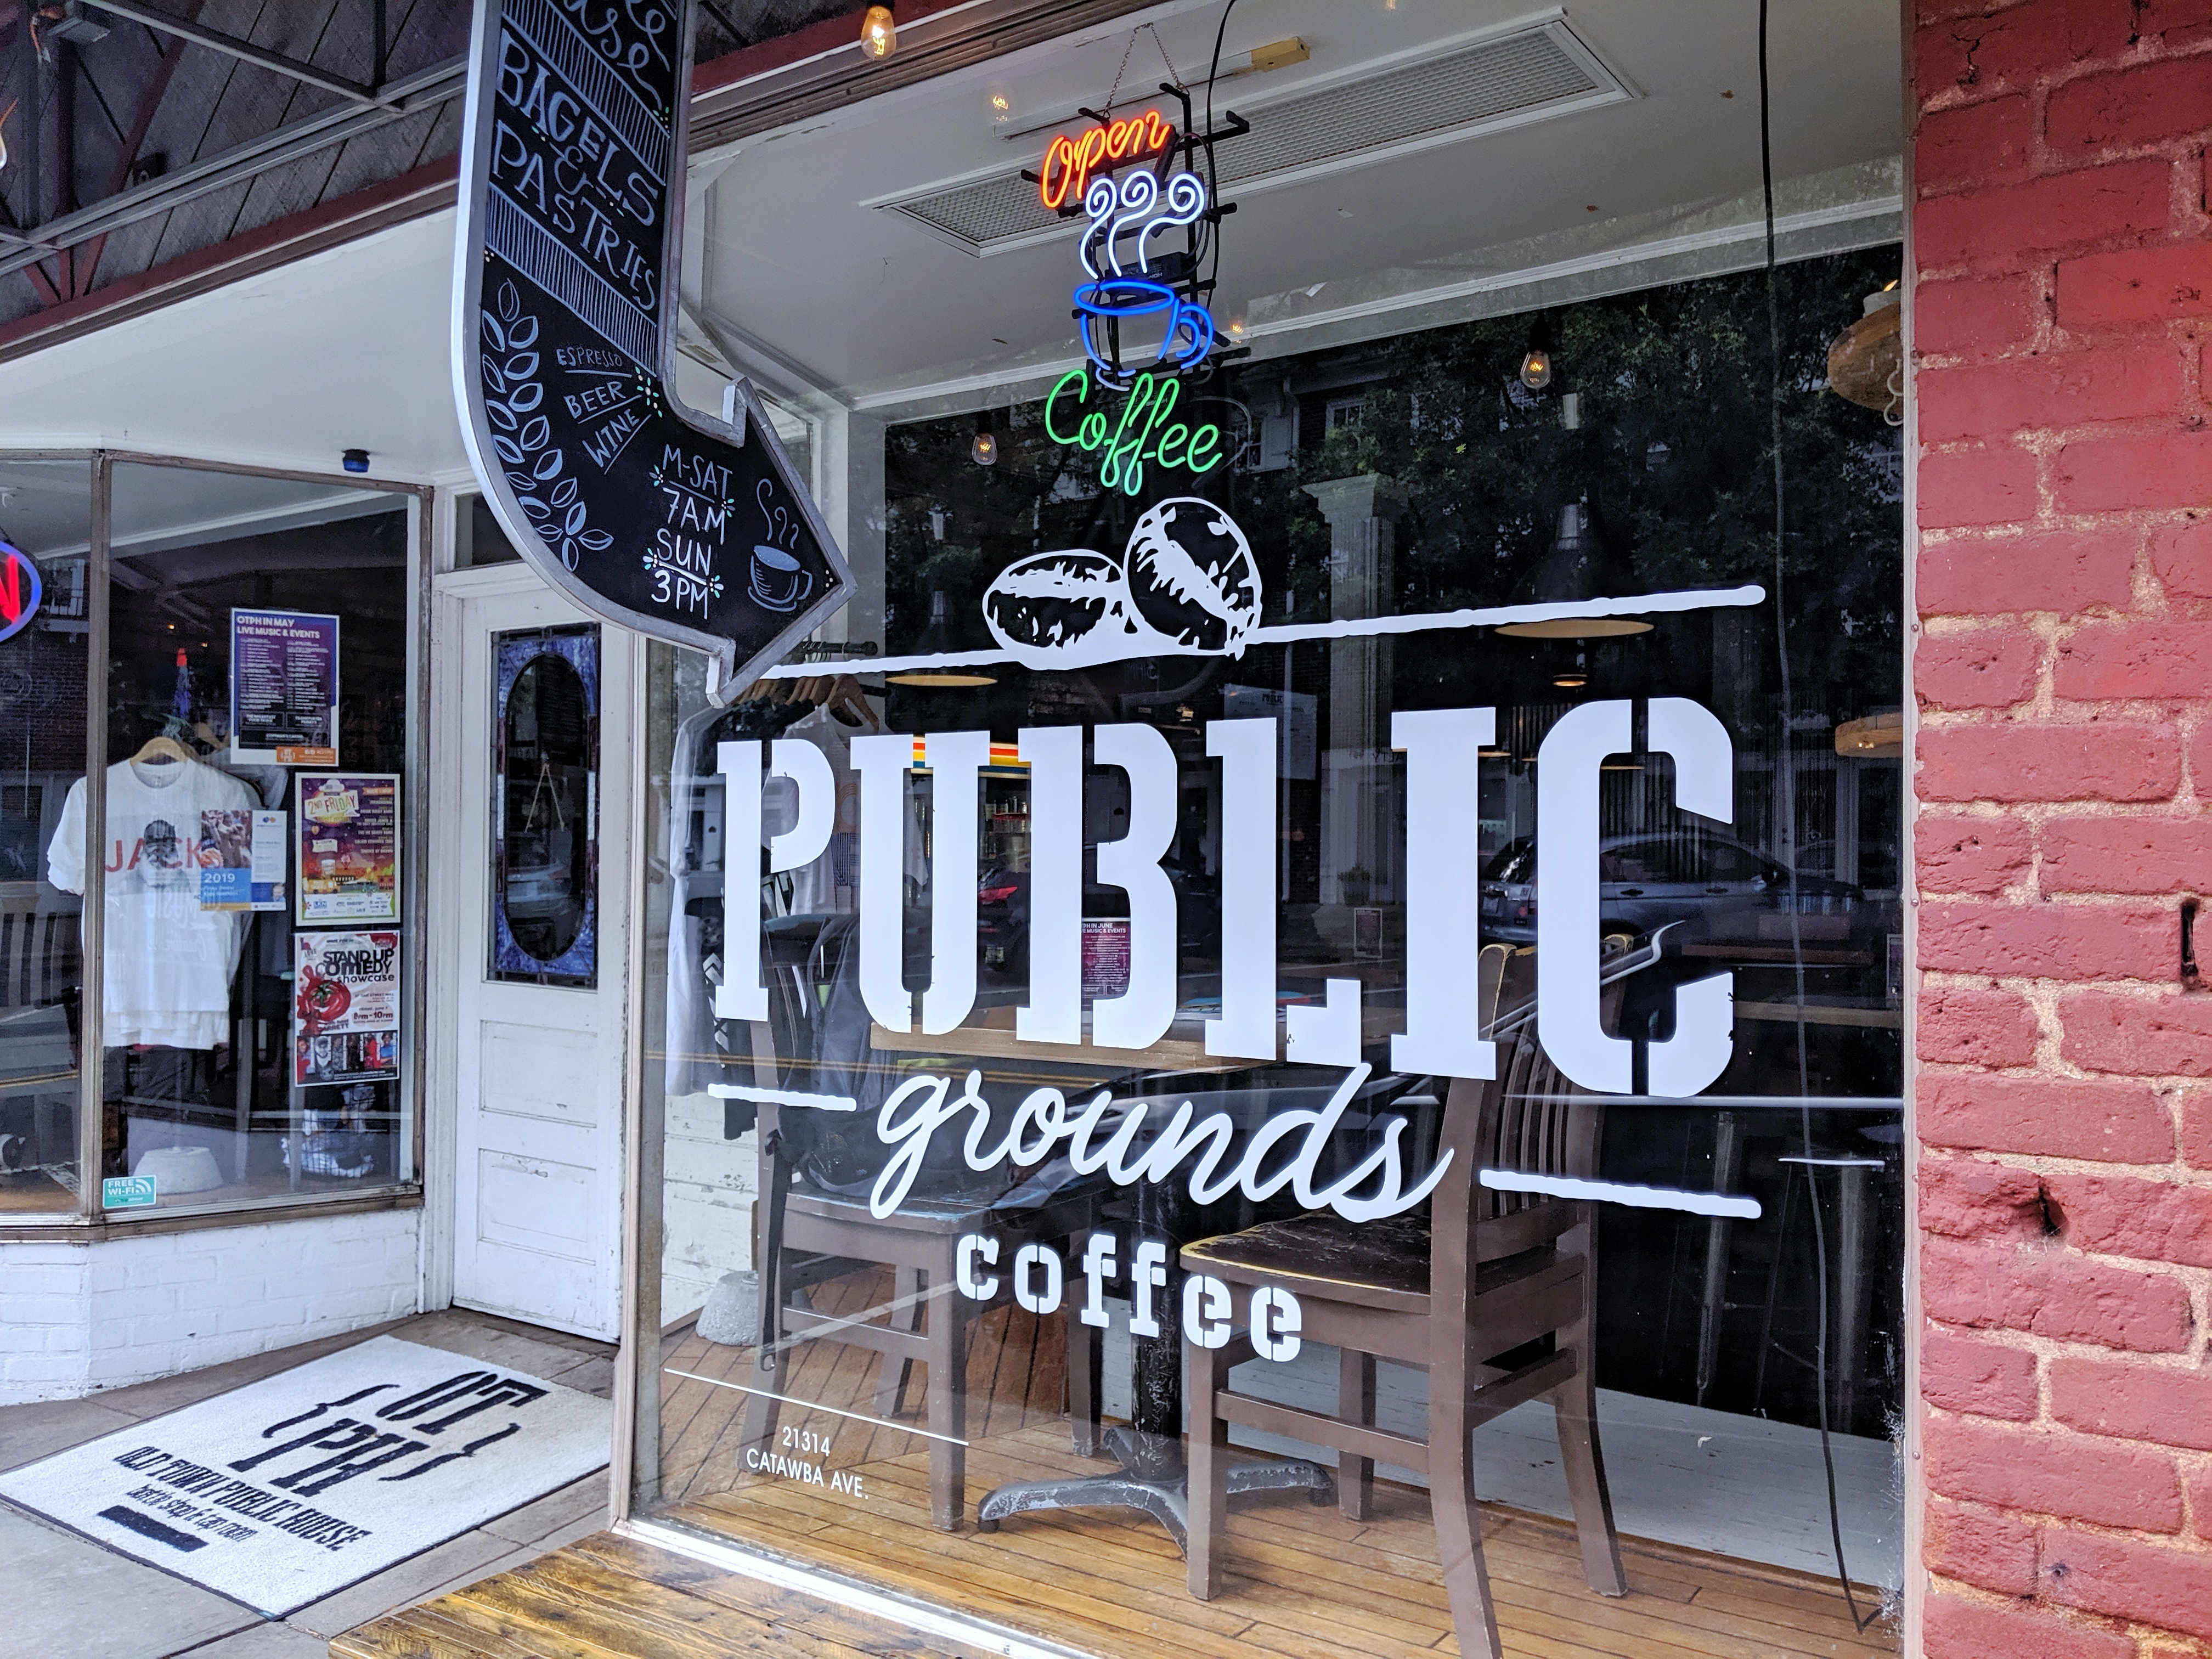 New Coffee Shop On The Block: Public Grounds